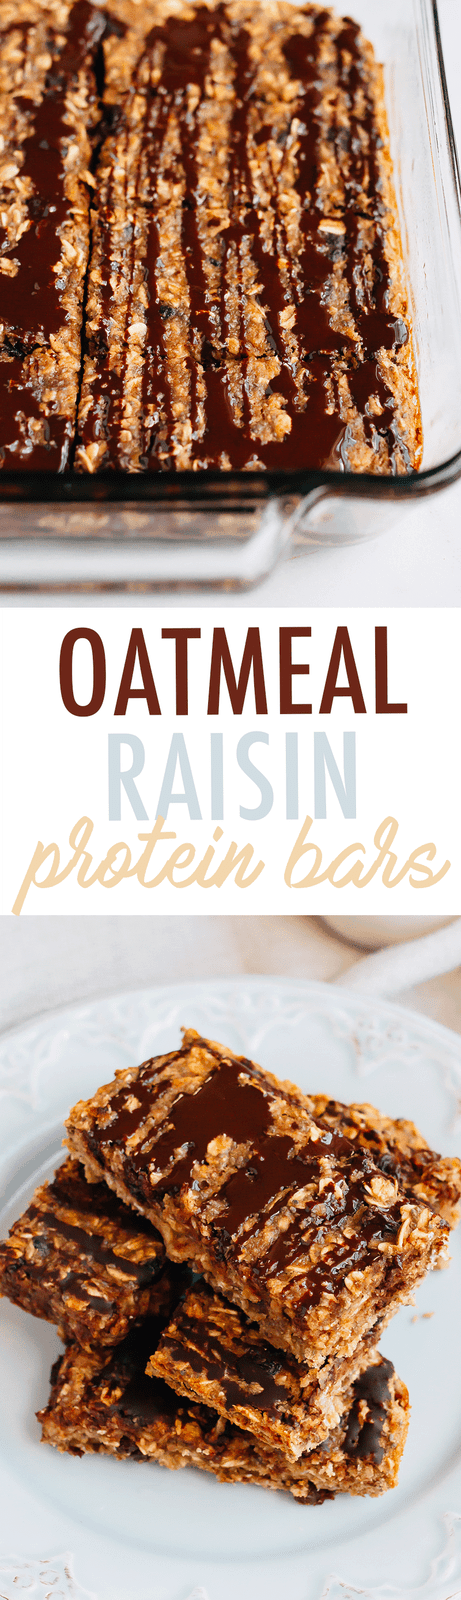 These cinnamon oatmeal raisin protein bars taste like an oatmeal raisin cookie drizzled with dark chocolate. They're great as a pre-workout snack and also make for an energizing on-the-go breakfast option for busy mornings.